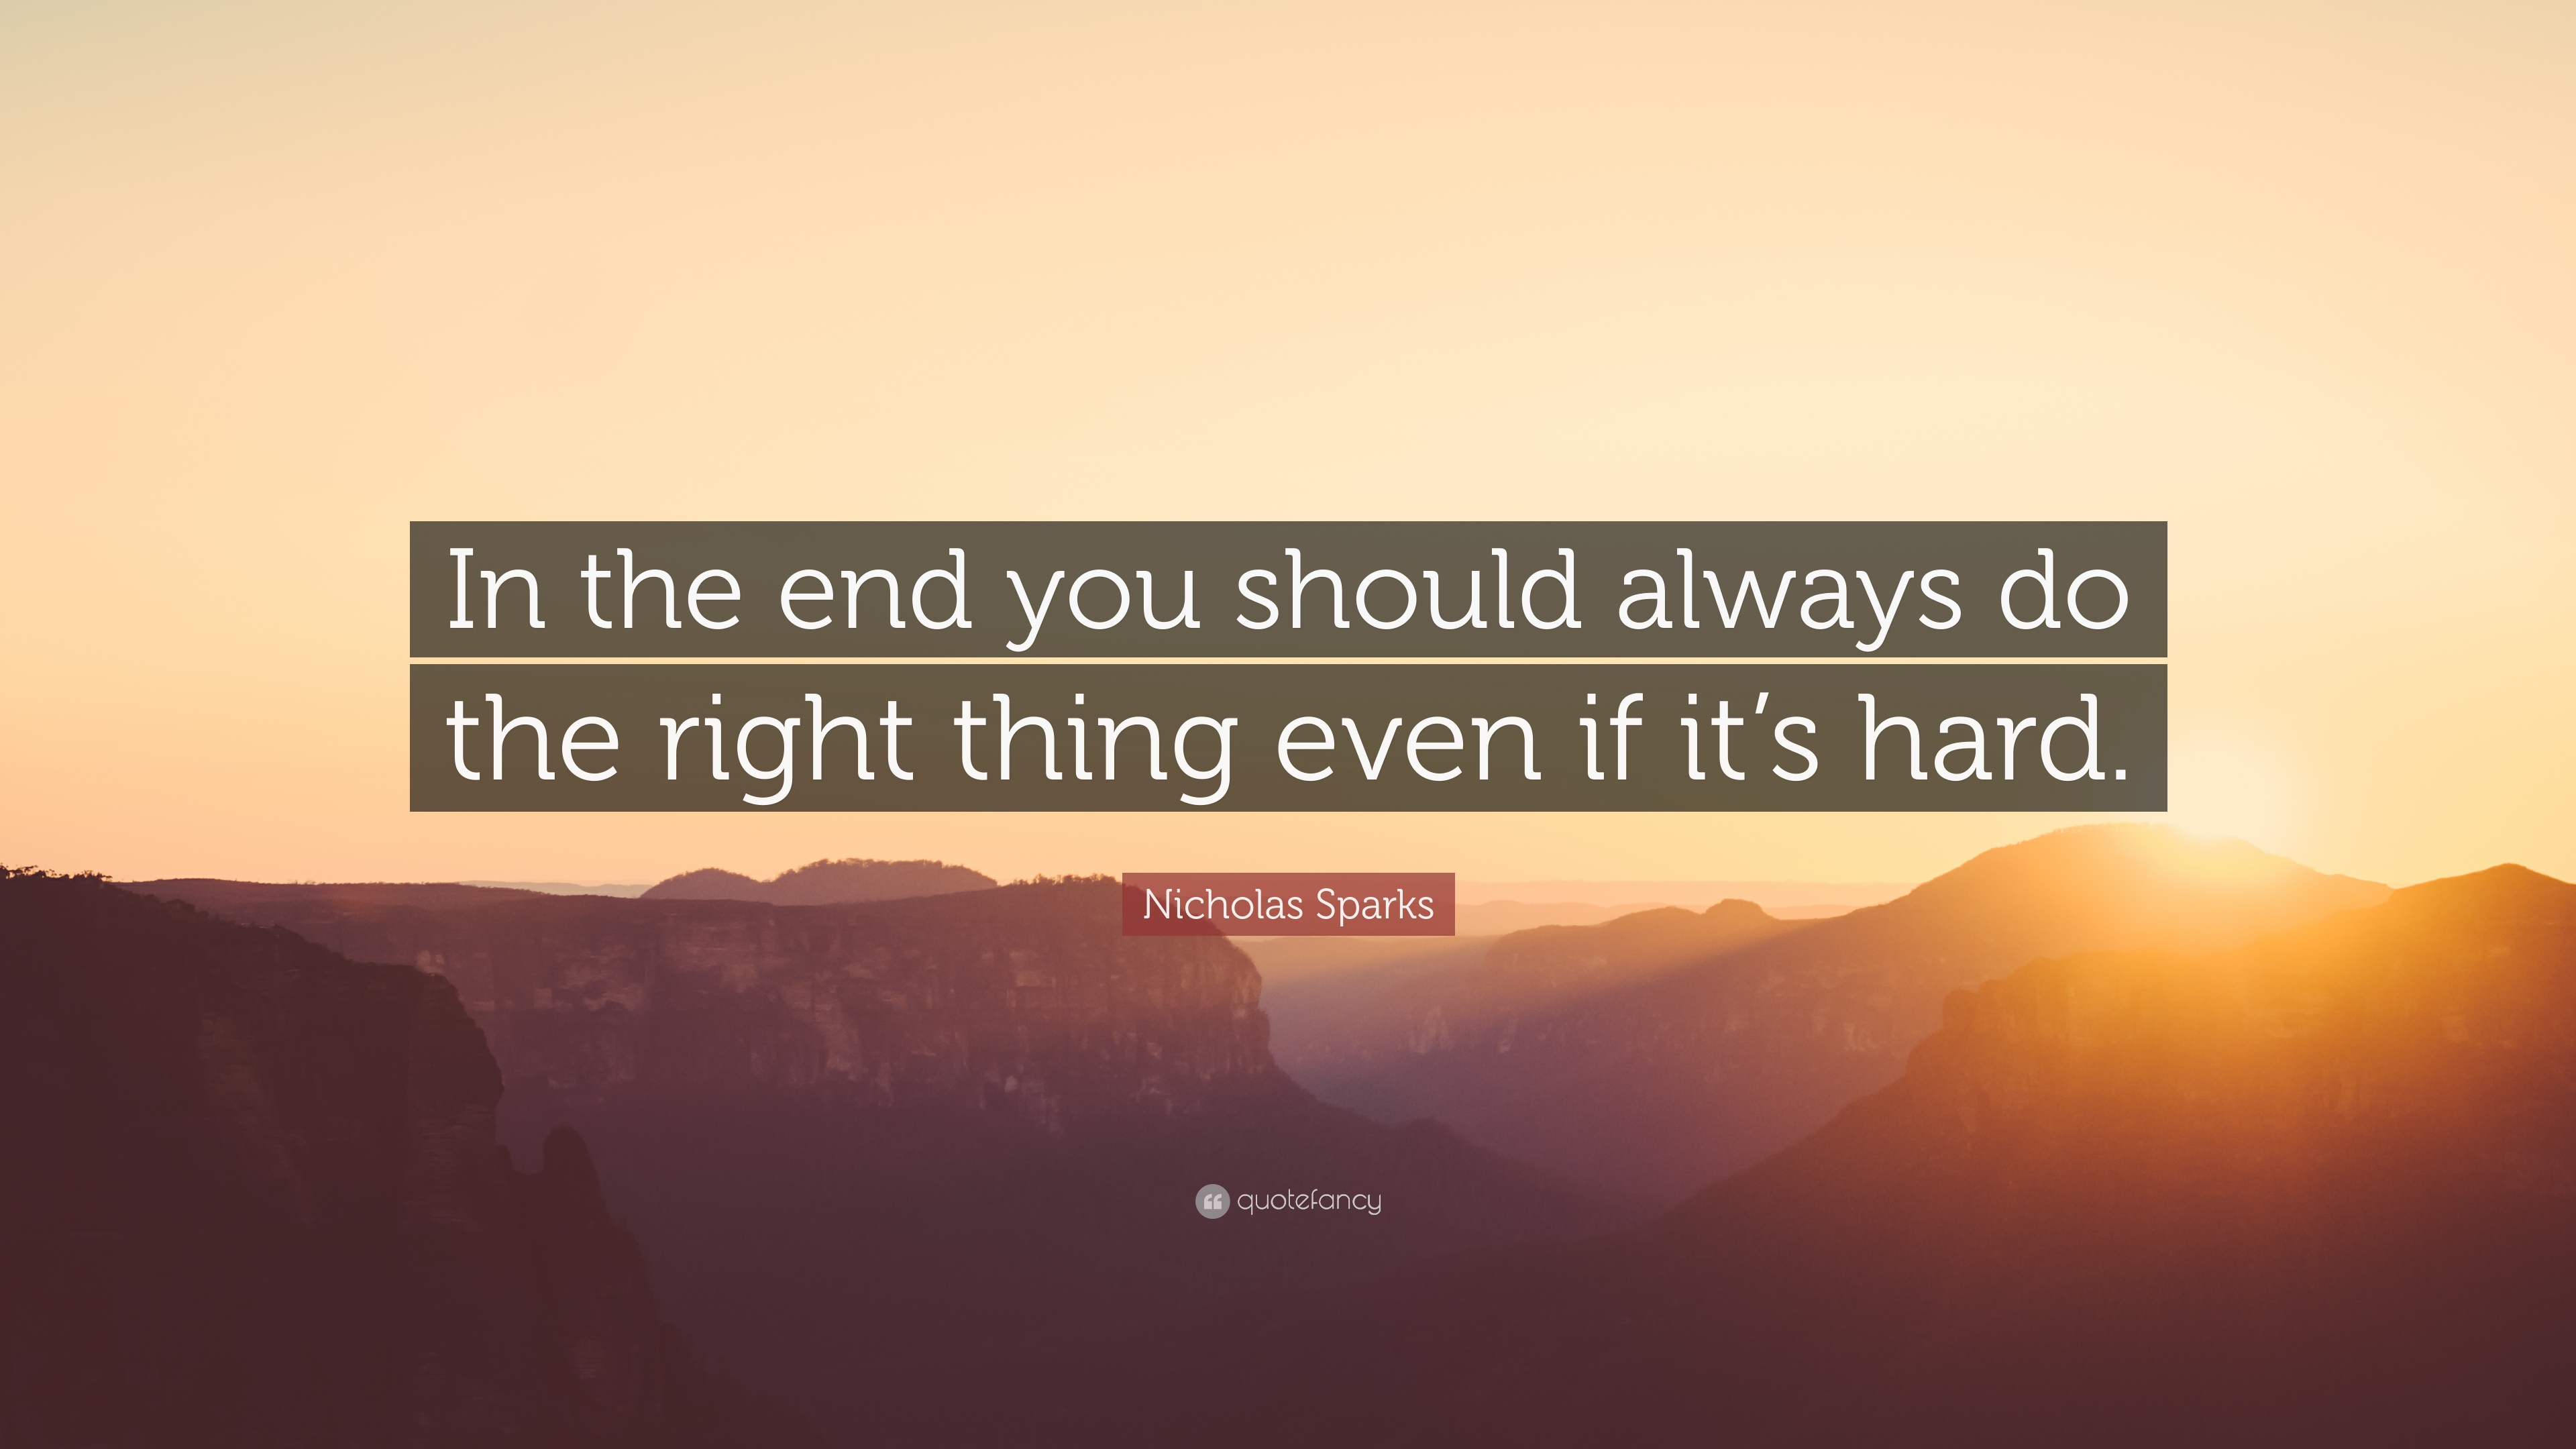 Nicholas Sparks Quote In The End You Should Always Do The Right